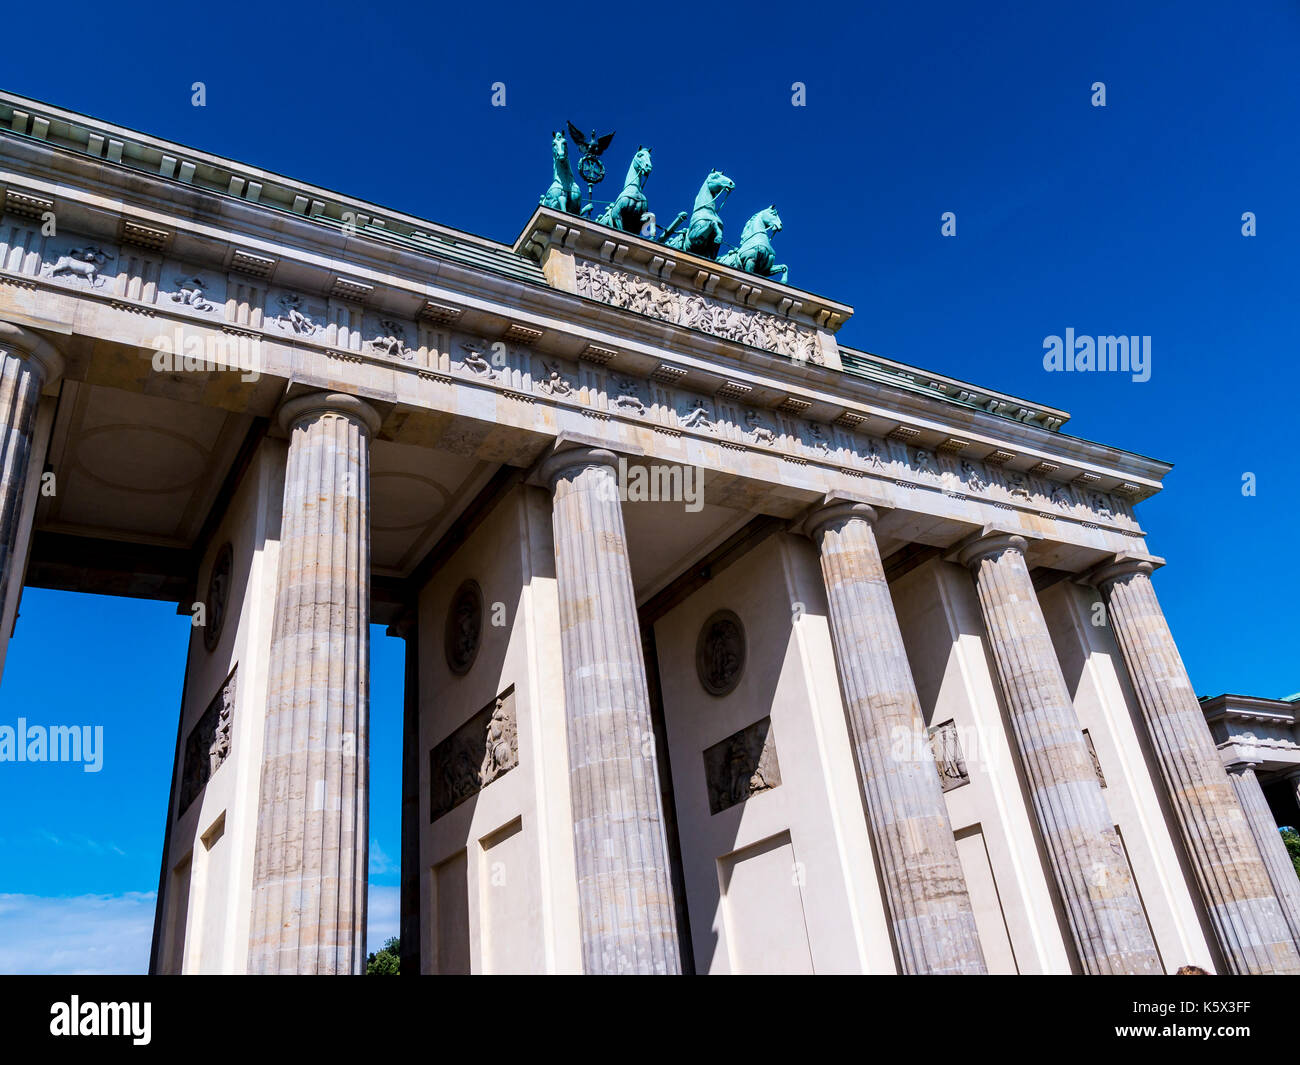 The Brandenburg Gate In Berlin Germany - Stock Image